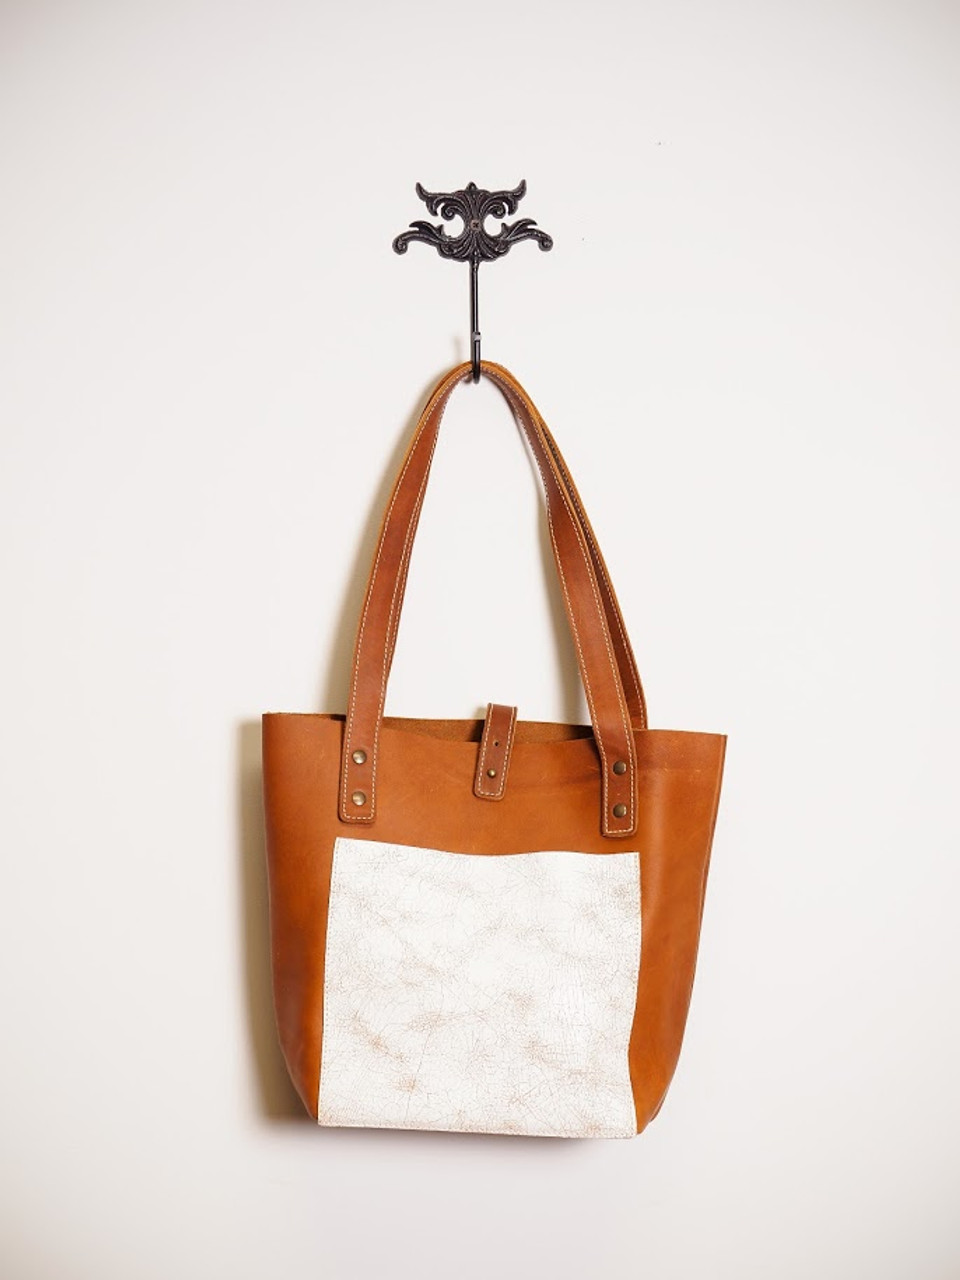 Brown Leather Tote Bag with White, Square Panel